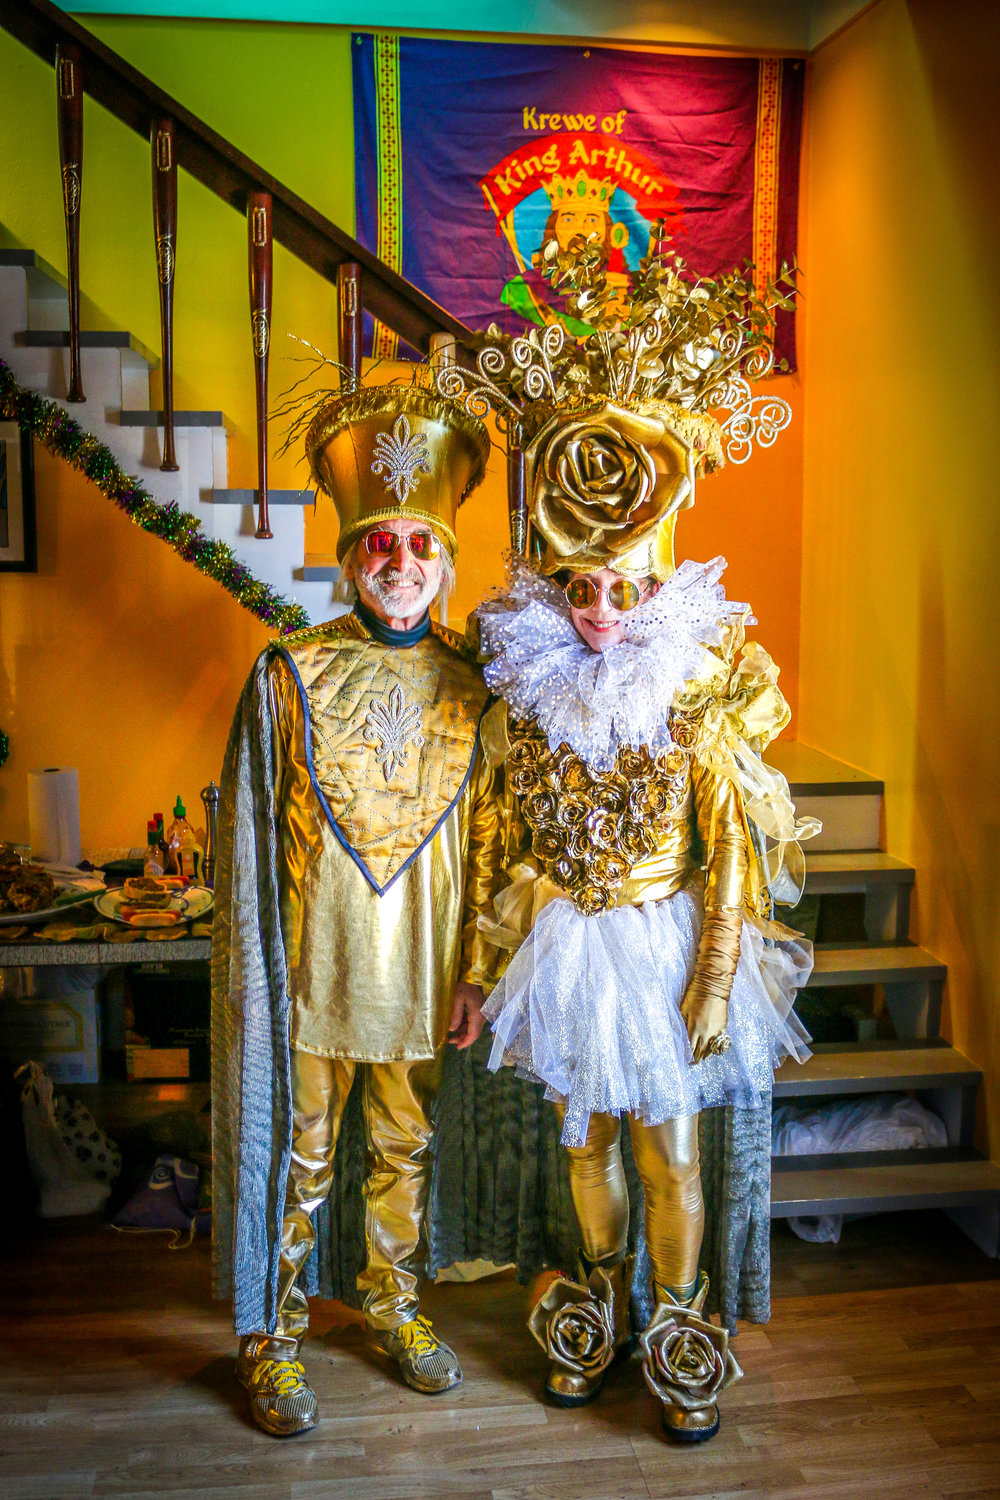 Elaborate Costumes for 9 a.m.